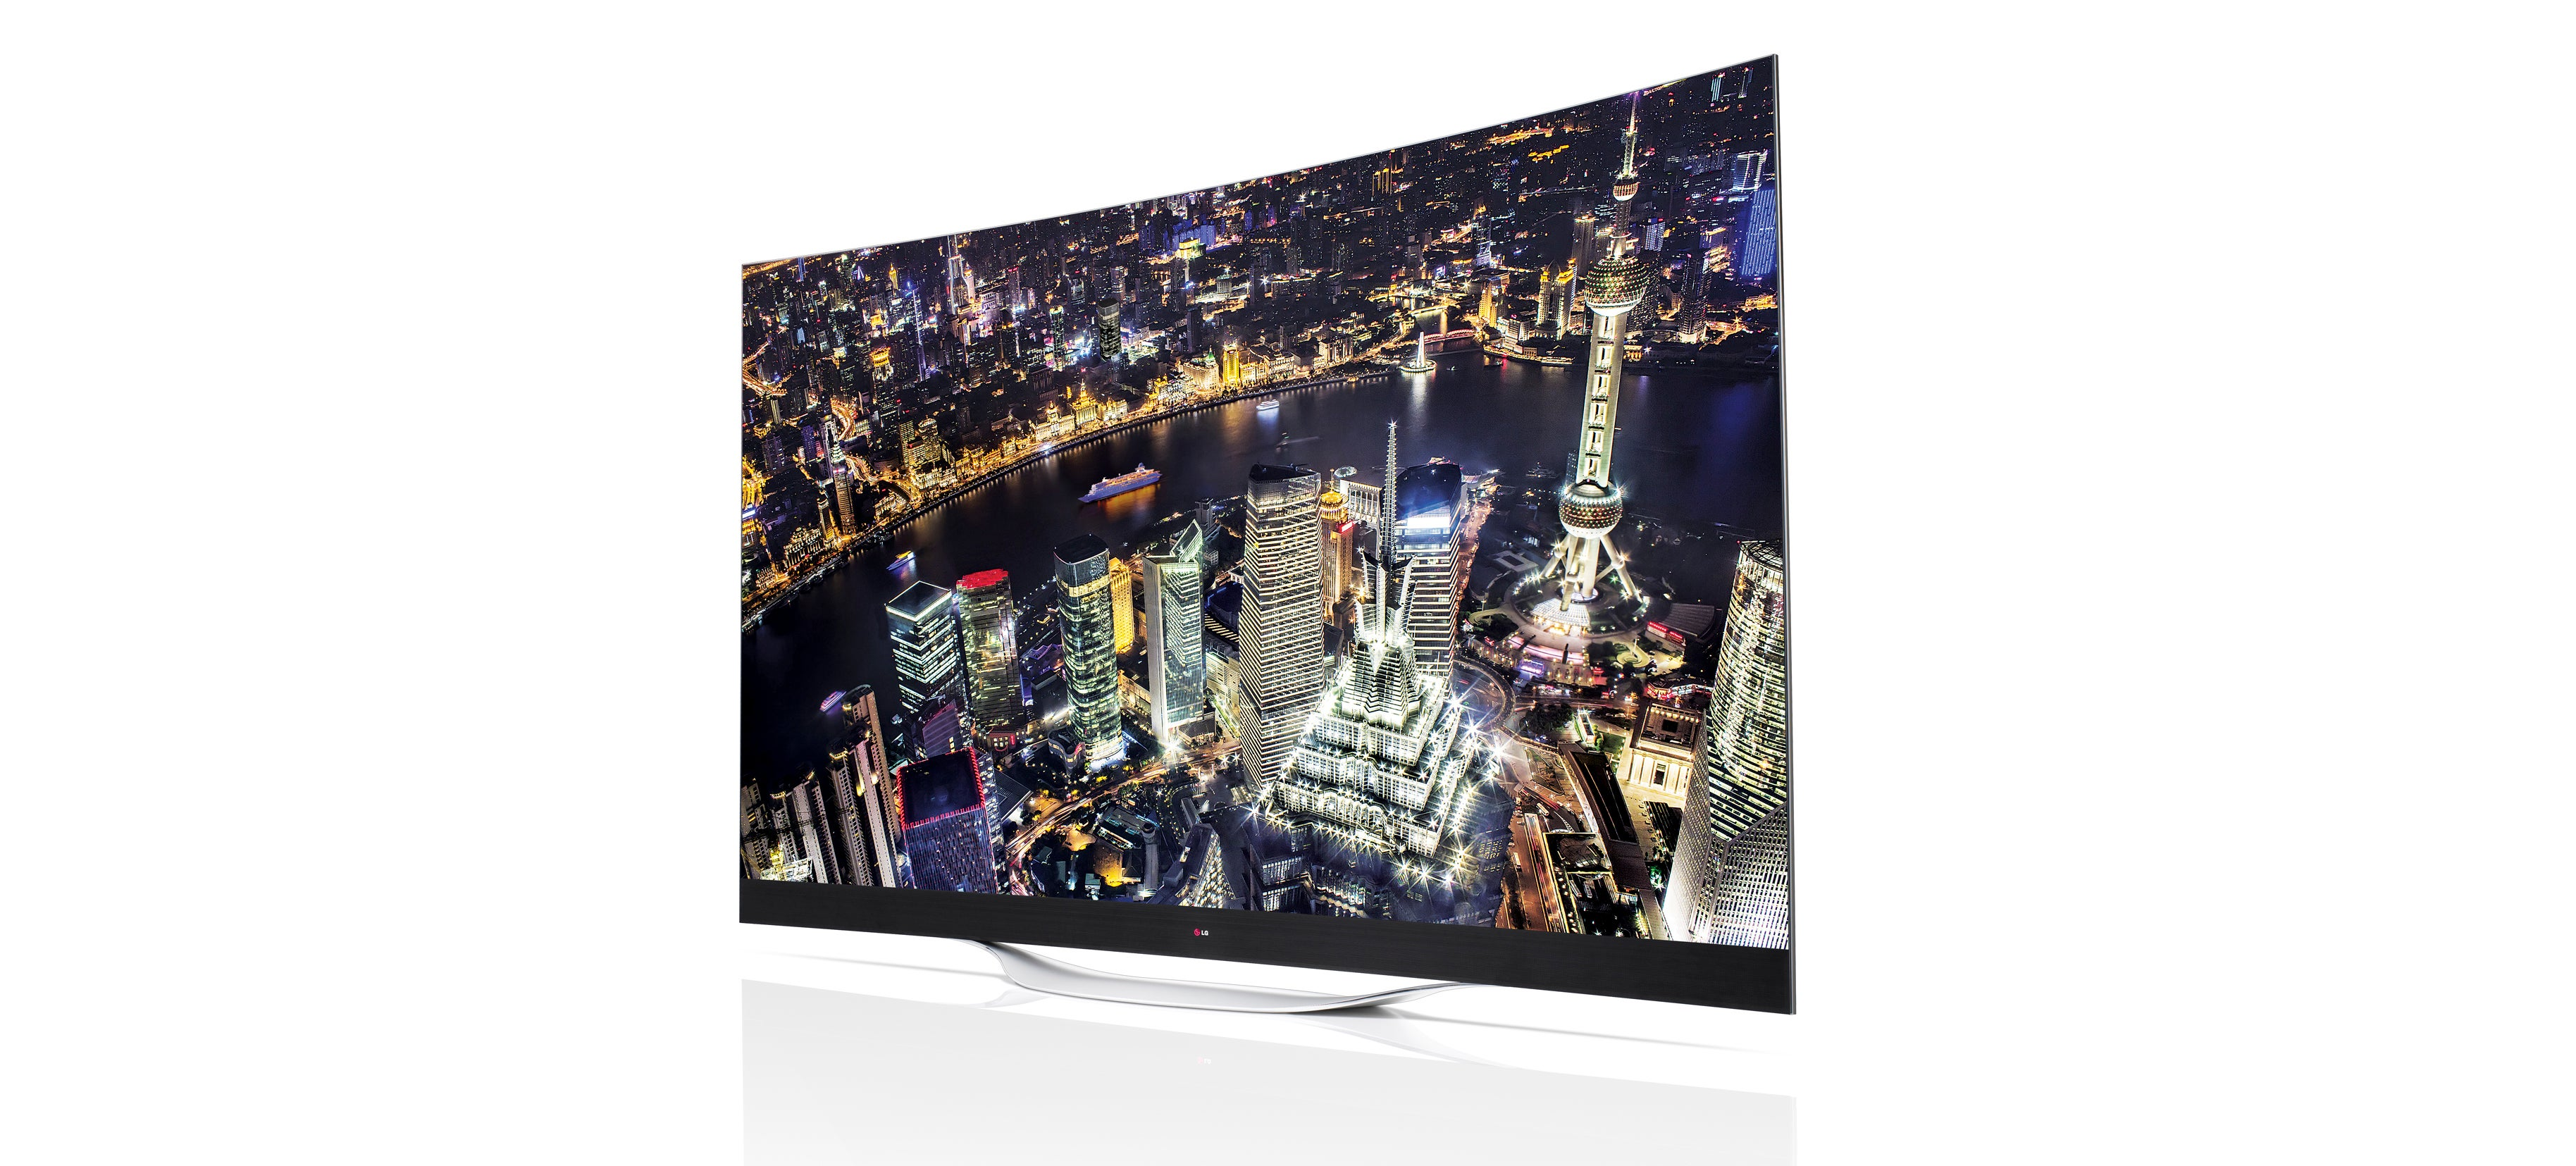 The First 4K OLED TV You Can Buy Will Cost $12,000